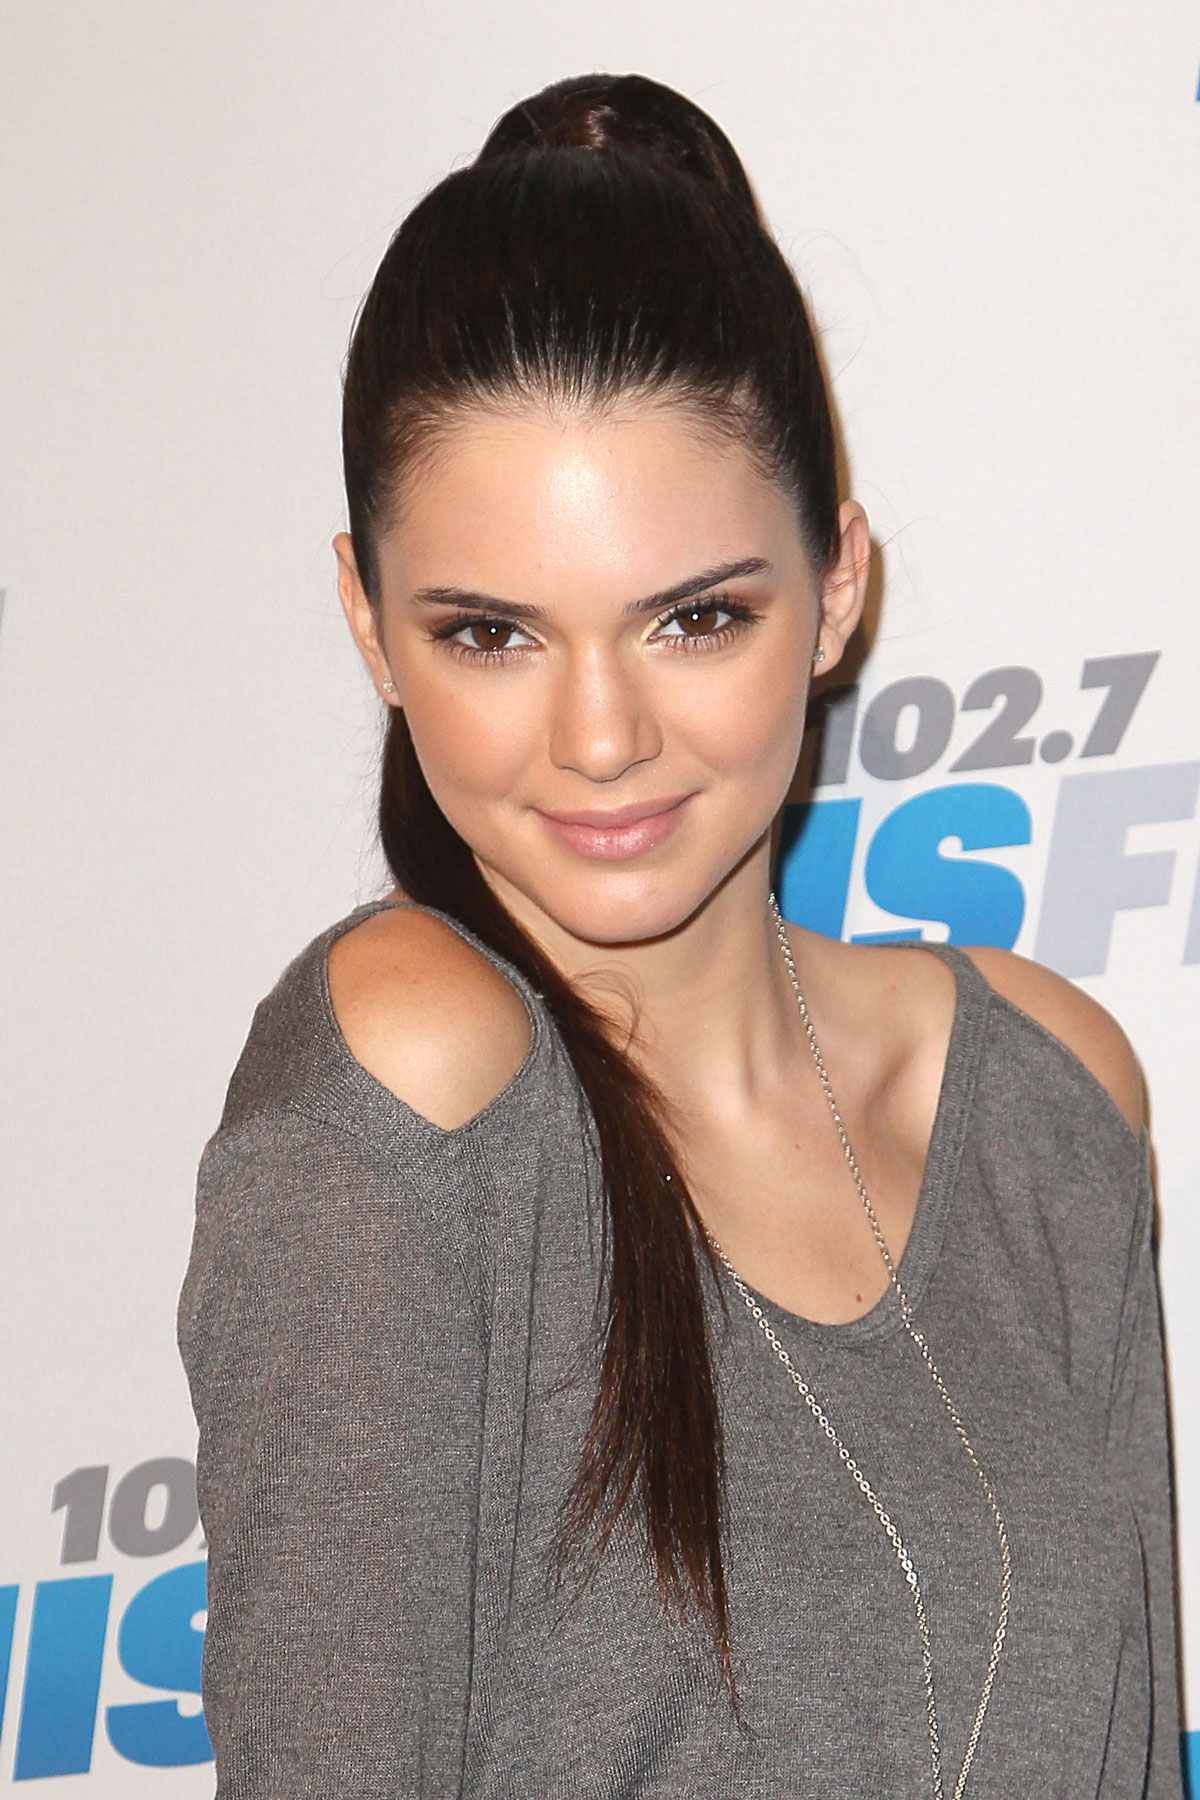 KENDALL JENNER at 2012 KIIS FM   s Jingle Ball in Los AngelesKendall Jenner